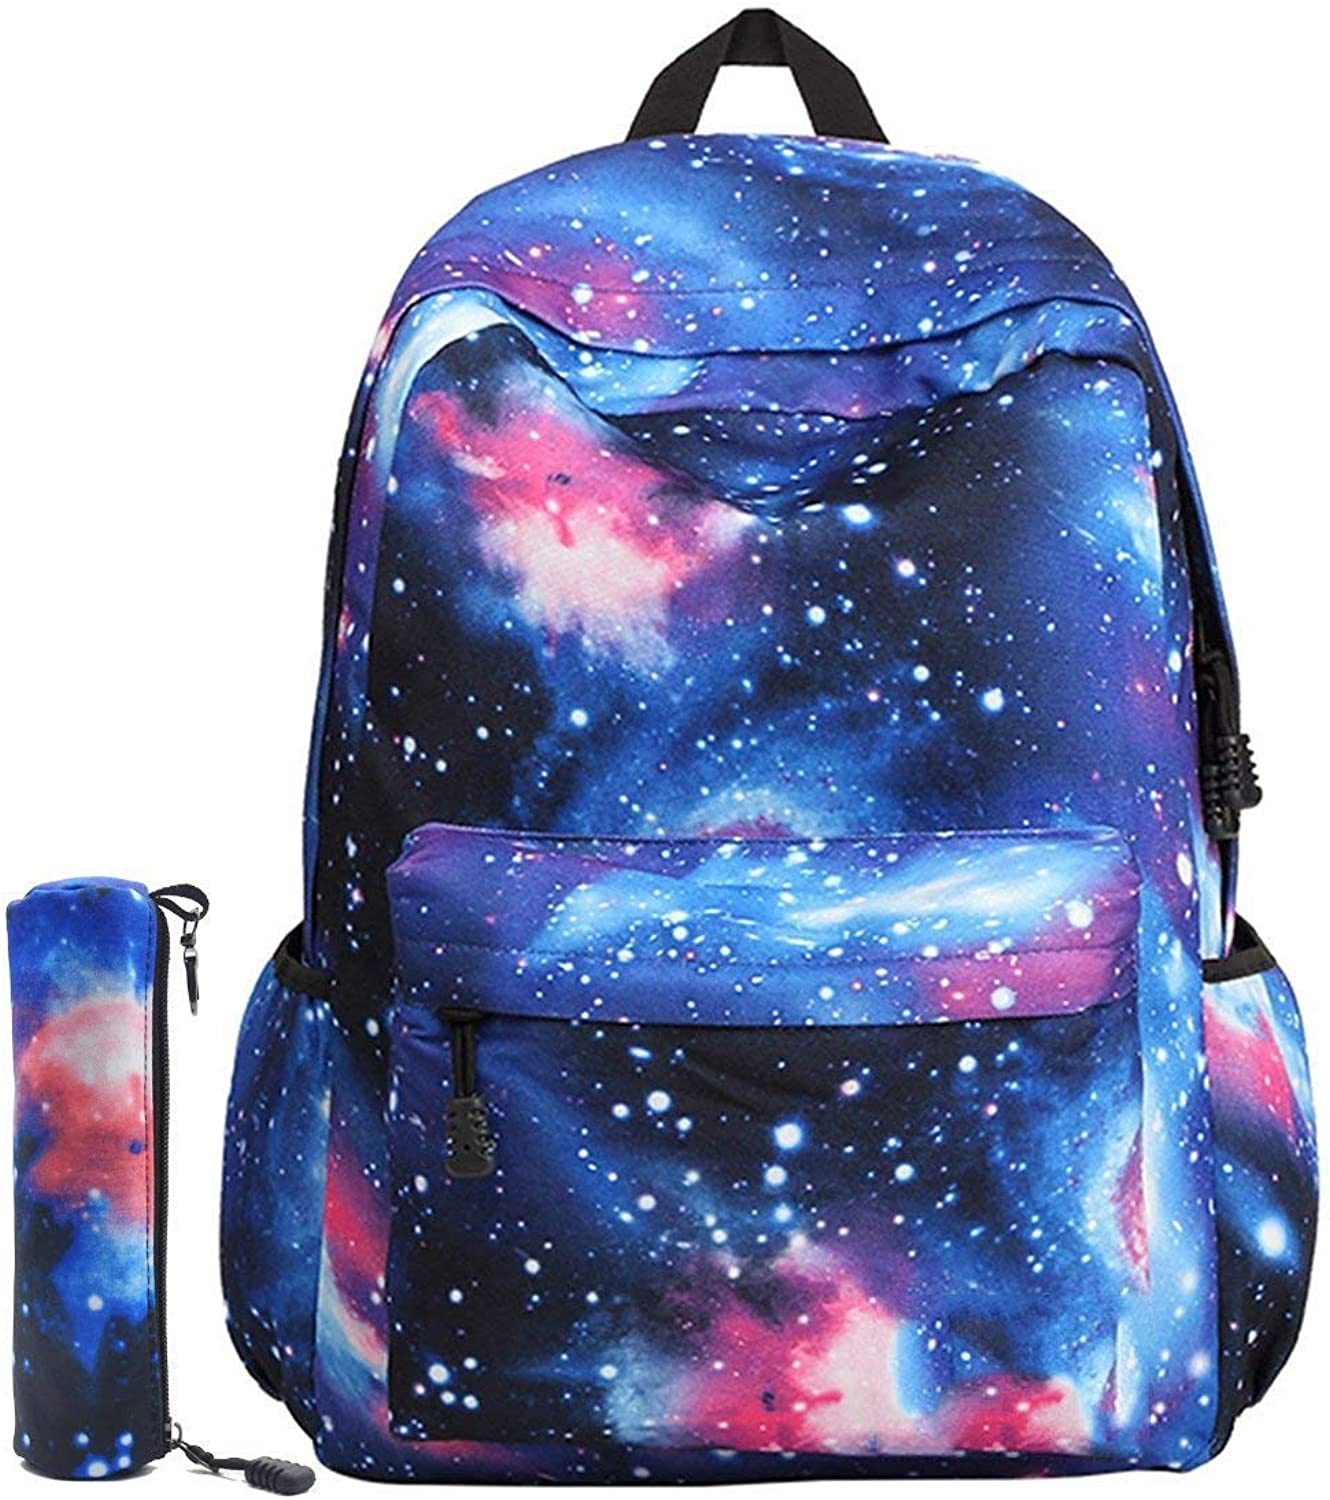 DSSchool bag Backpack  Popular TrendyMax Laptop Backpack Backpack Tablet Bag Leisure Travel Large Capacity Schoolbag && (color   A, Size   11.8  15.7  6.3inches)